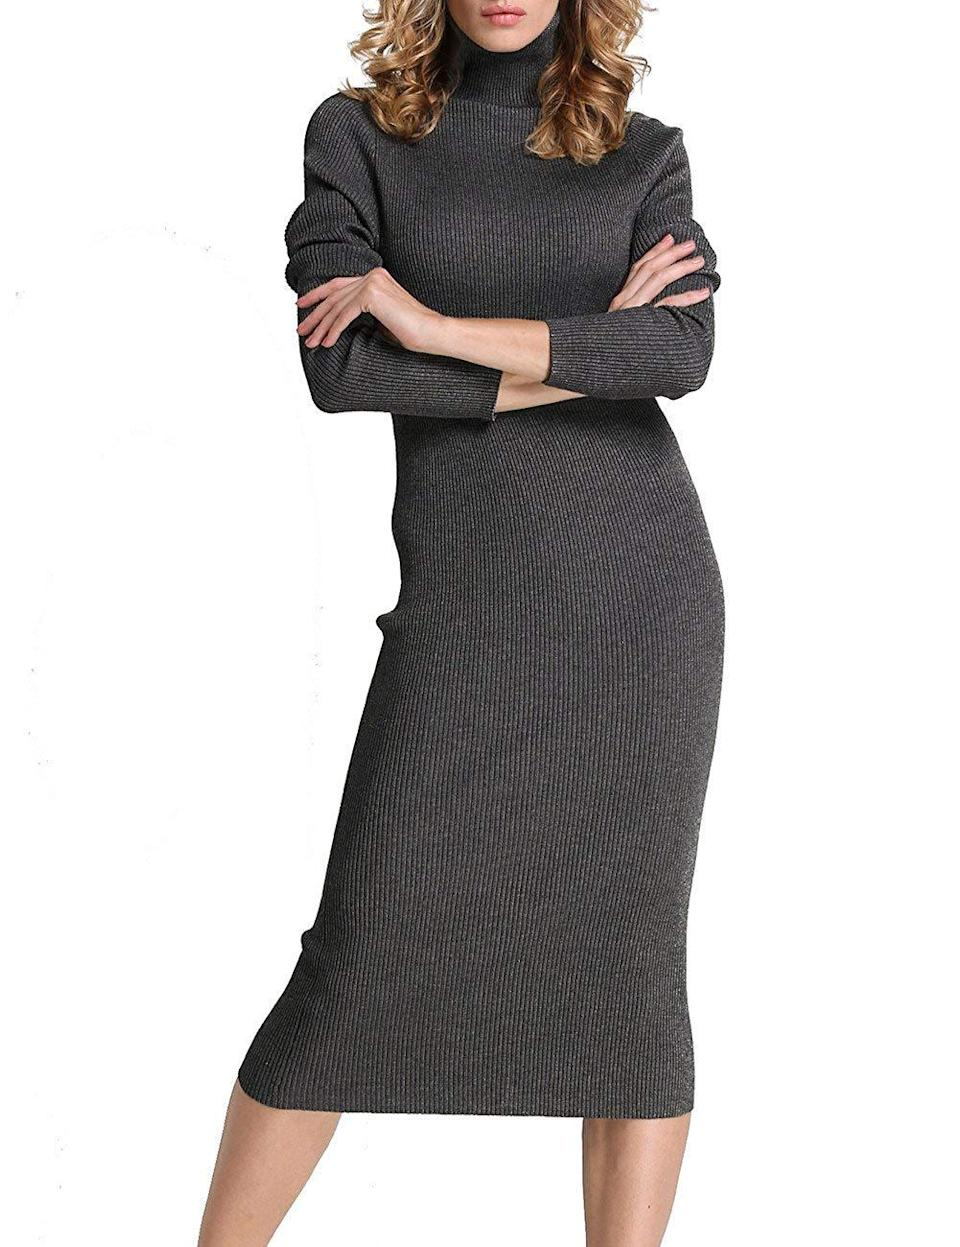 """<br><br><strong>Rocorose</strong> Ribbed Knit Long Sleeve Dress, $, available at <a href=""""https://www.amazon.com/dp/B01N4K6QCW"""" rel=""""nofollow noopener"""" target=""""_blank"""" data-ylk=""""slk:Amazon"""" class=""""link rapid-noclick-resp"""">Amazon</a>"""